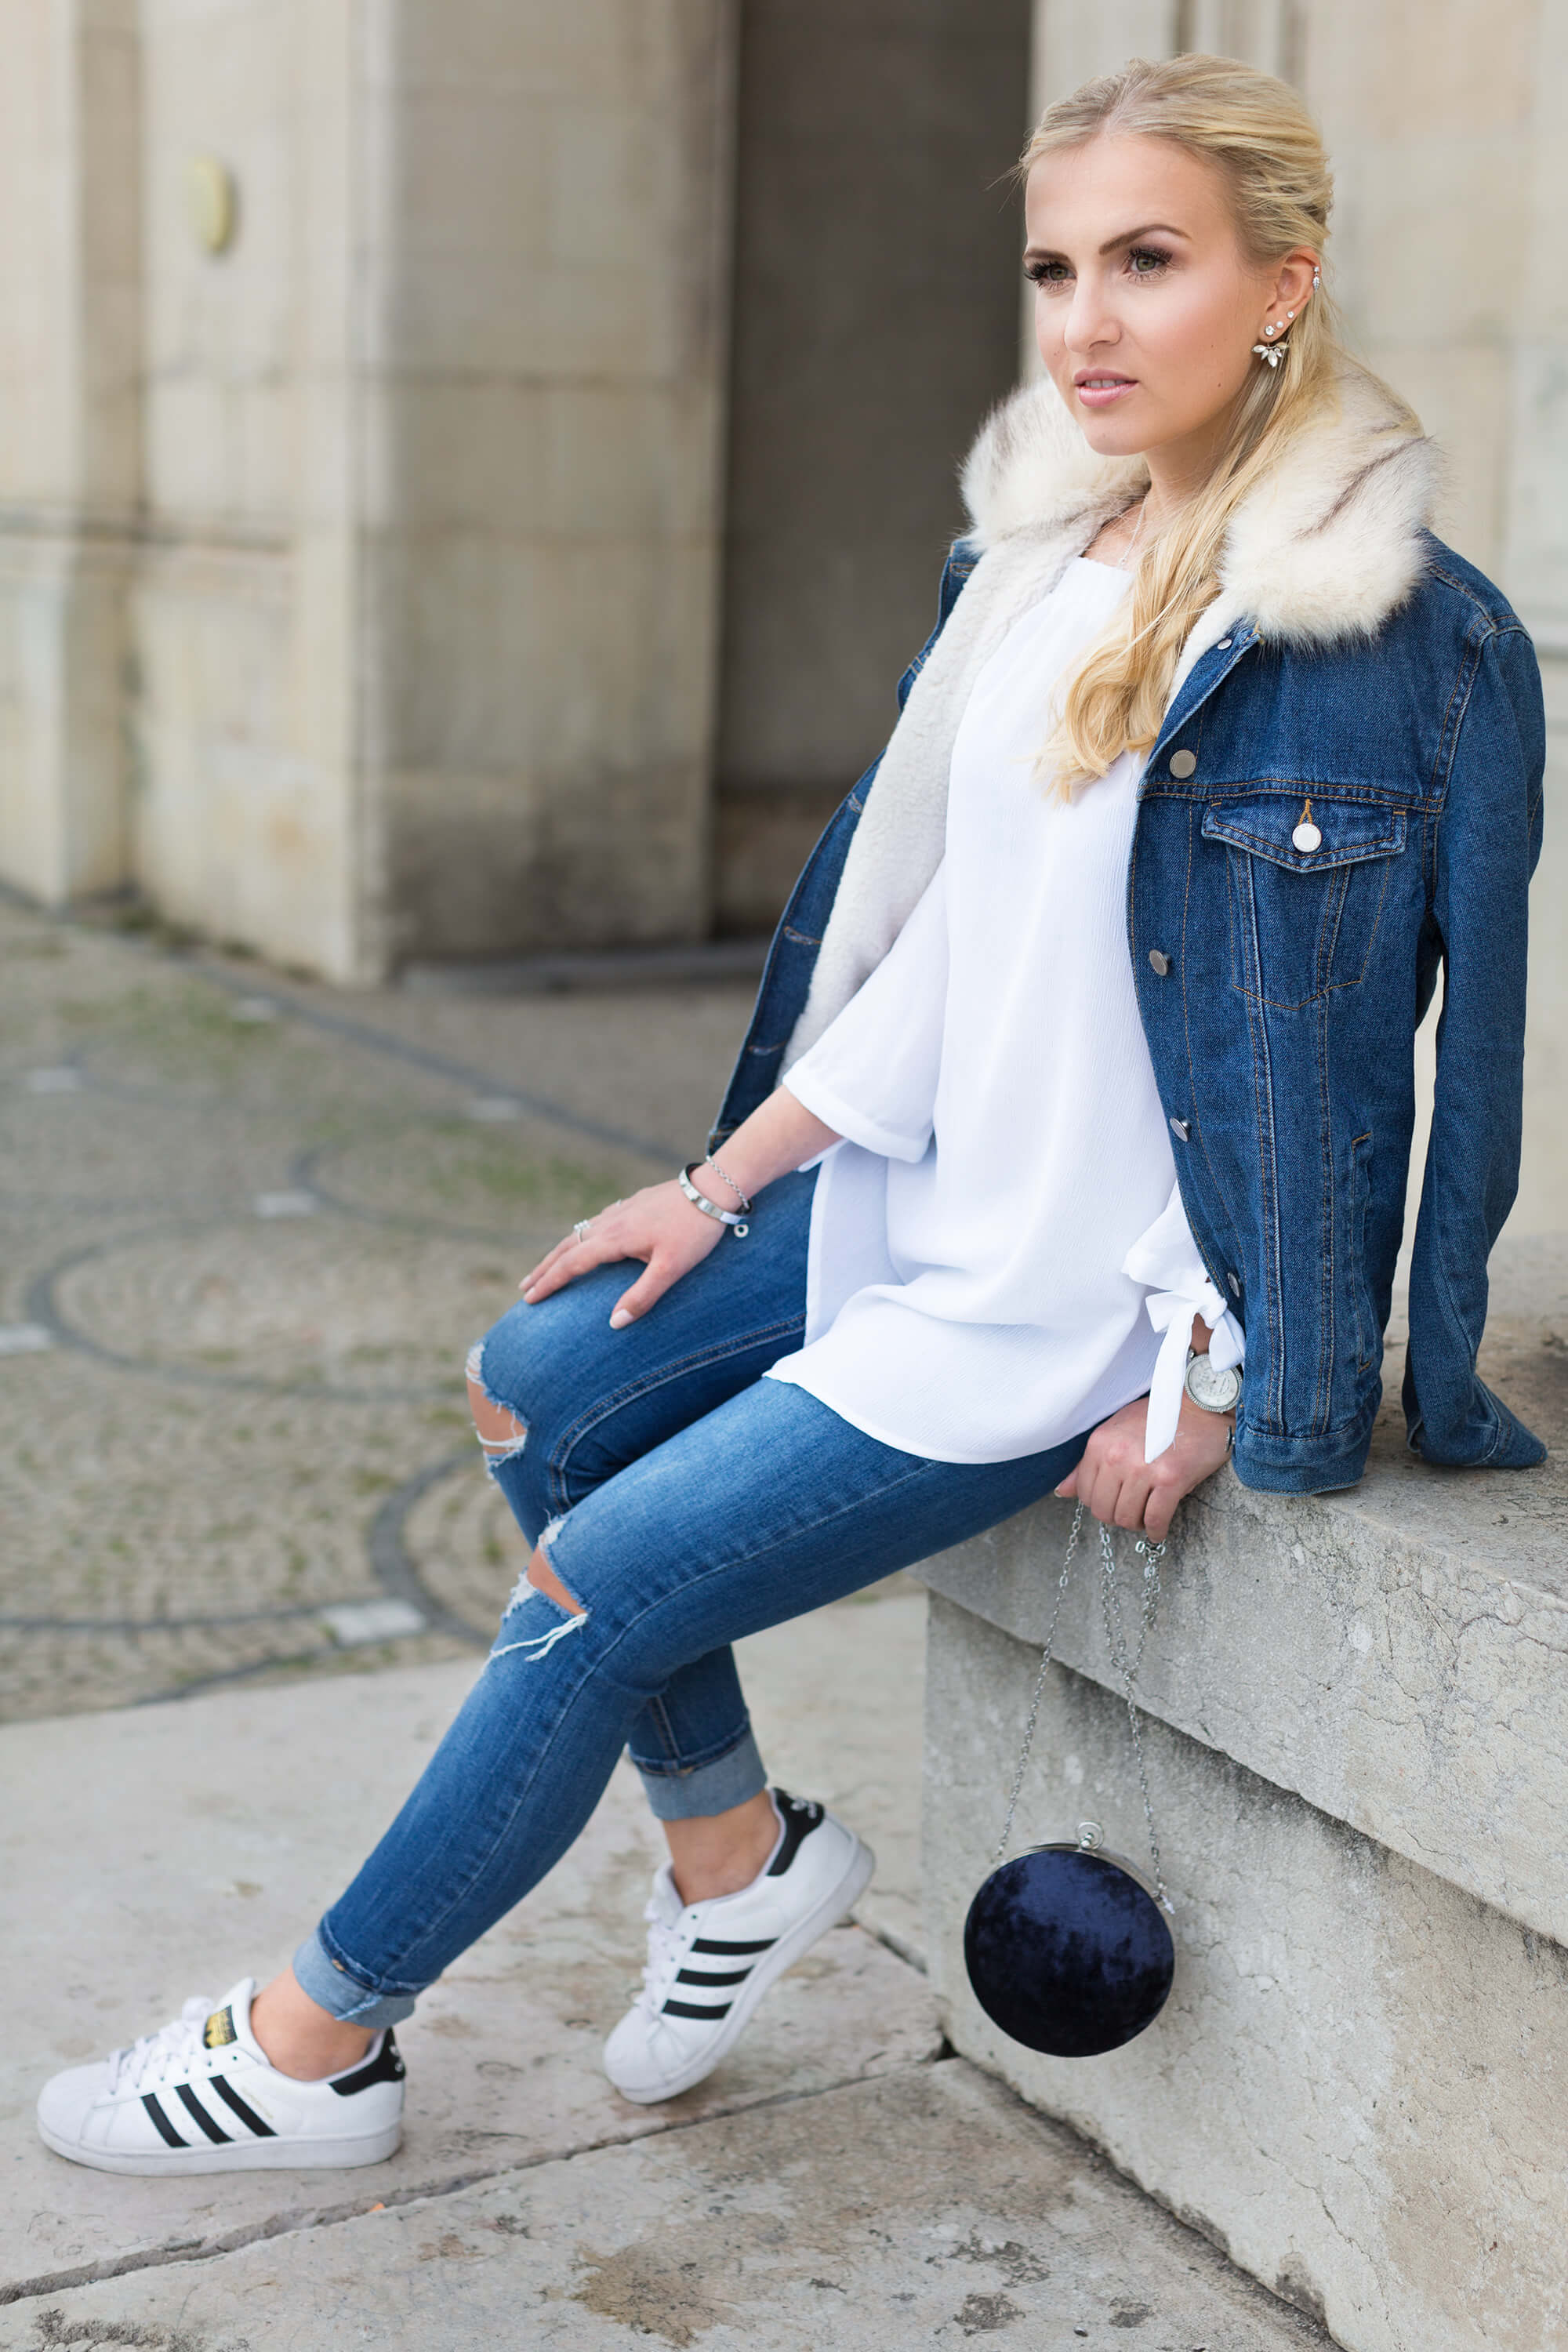 Double Denim Look Jeans richtig kombinieren Fashion Blog Katefully